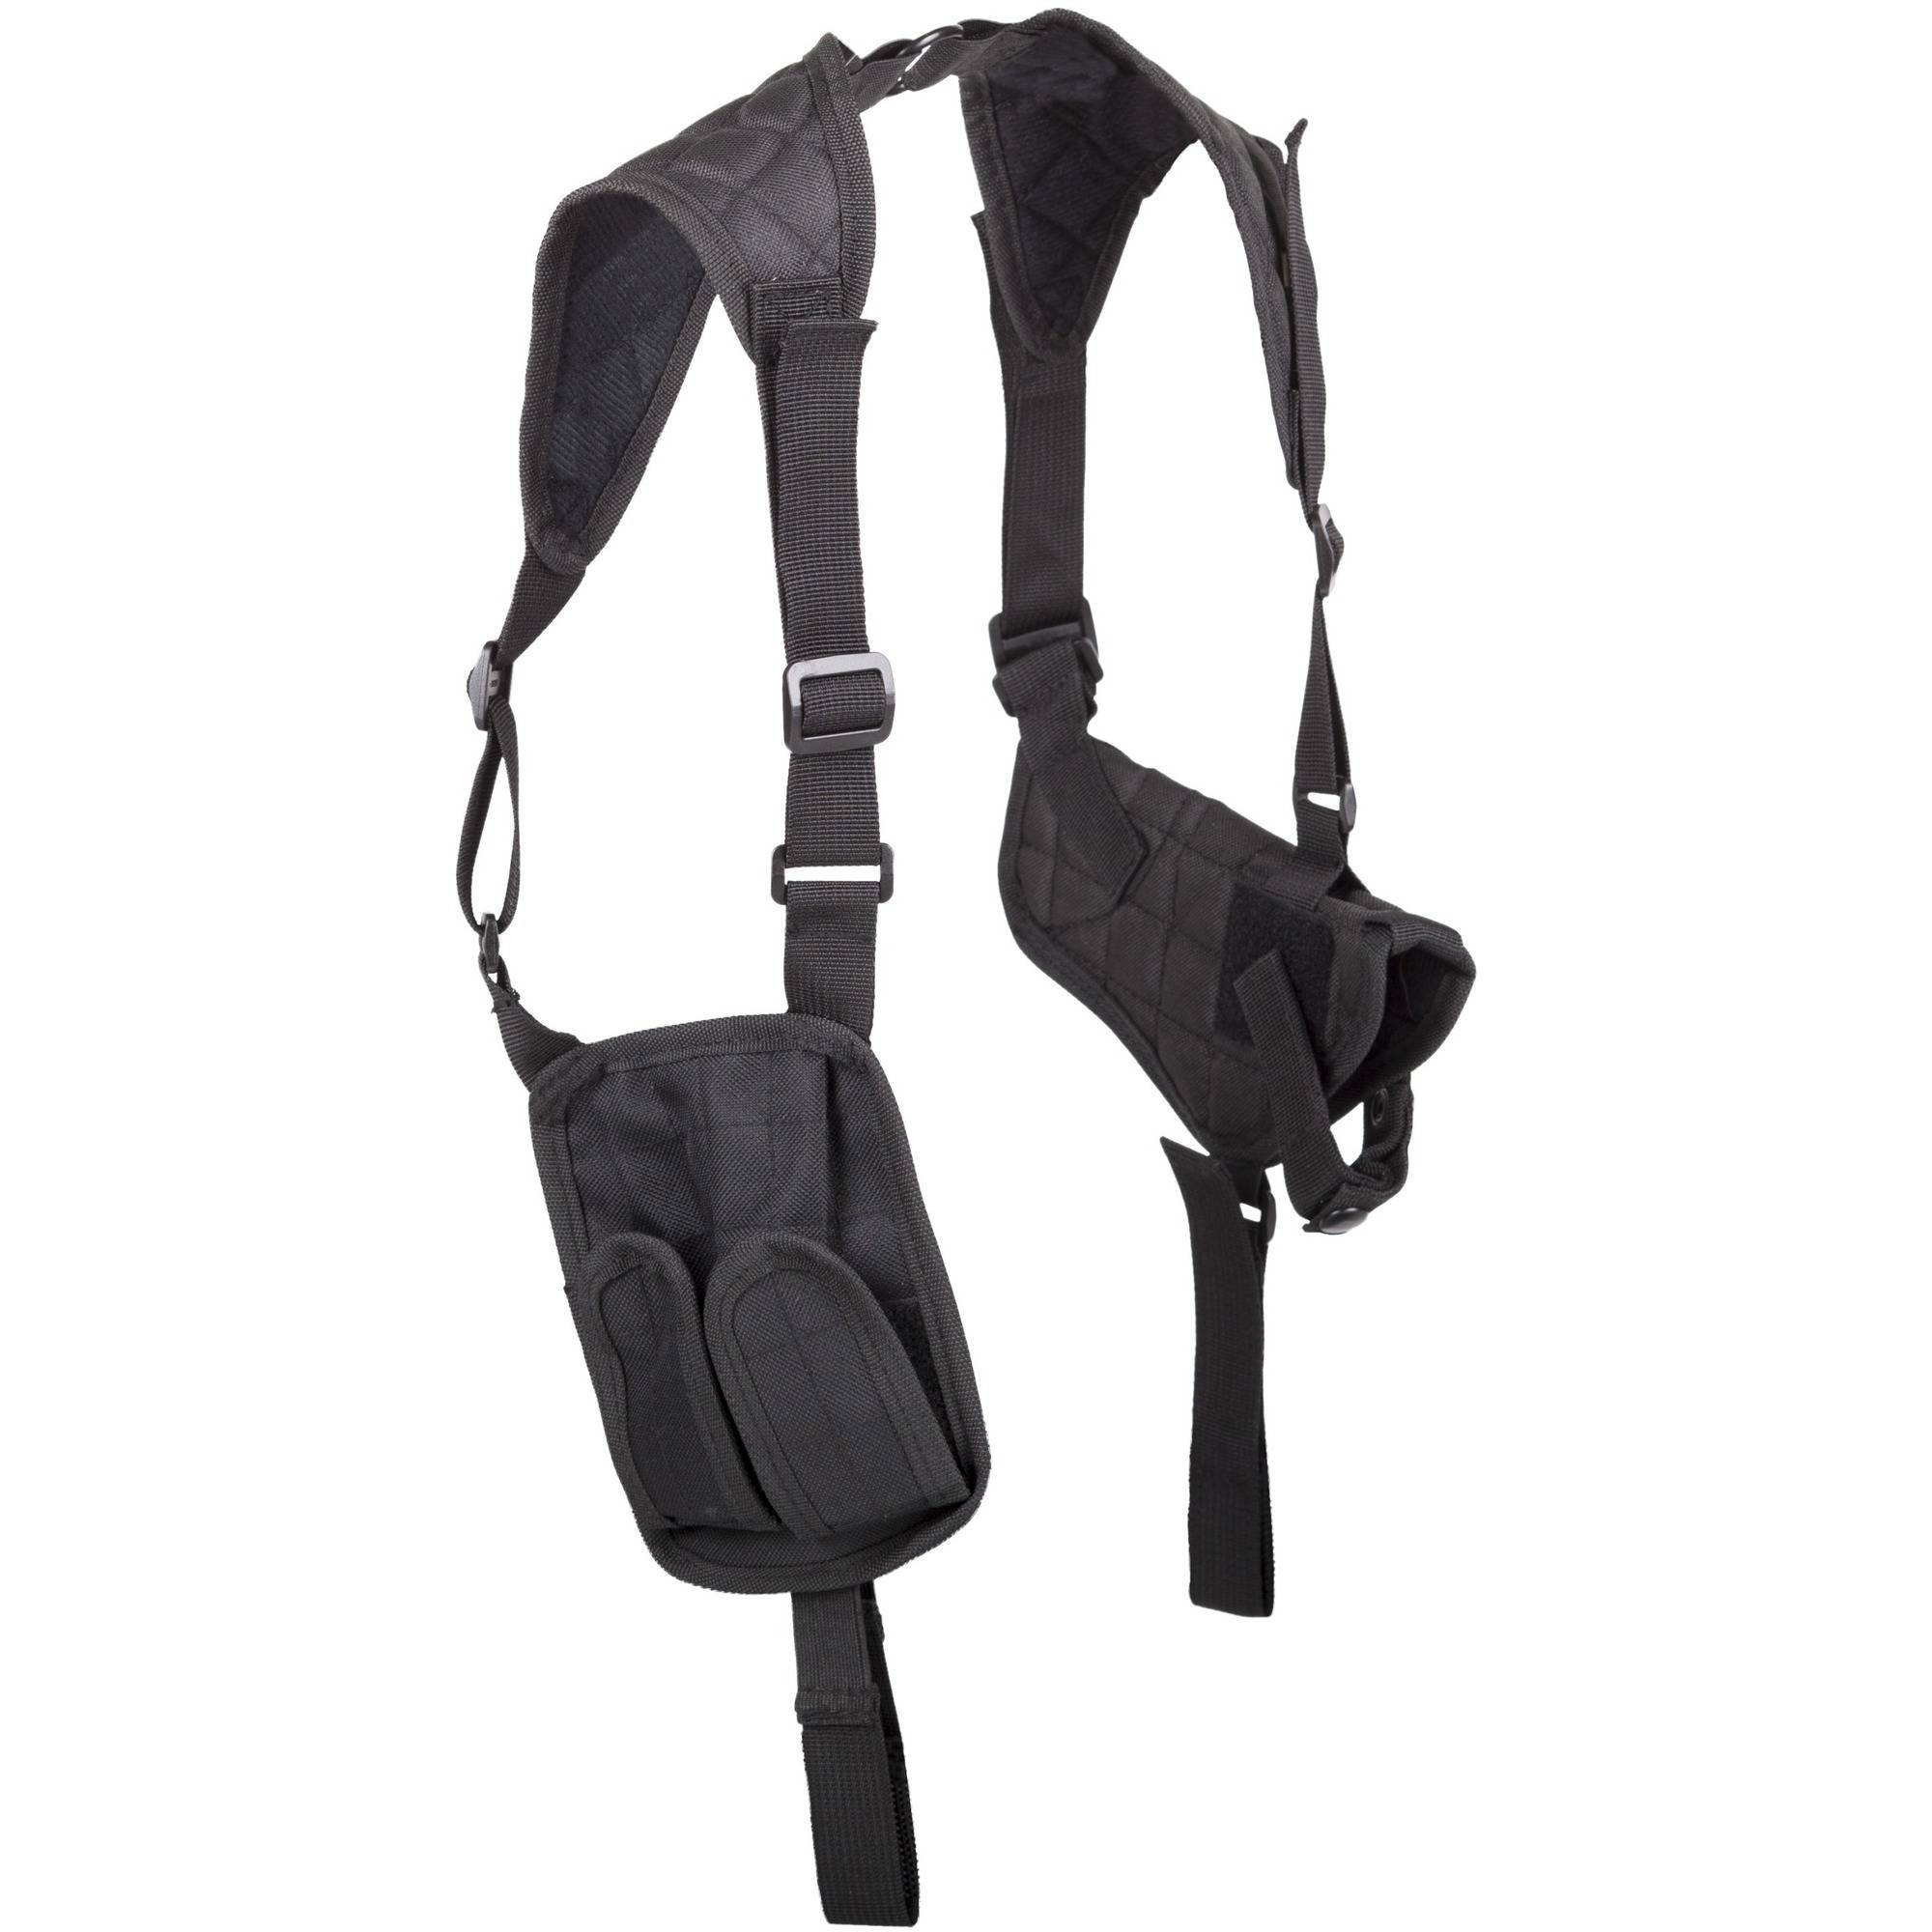 Crosman Shoulder Holster SAH03 Airsoft Adjustable straps, fits most handguns